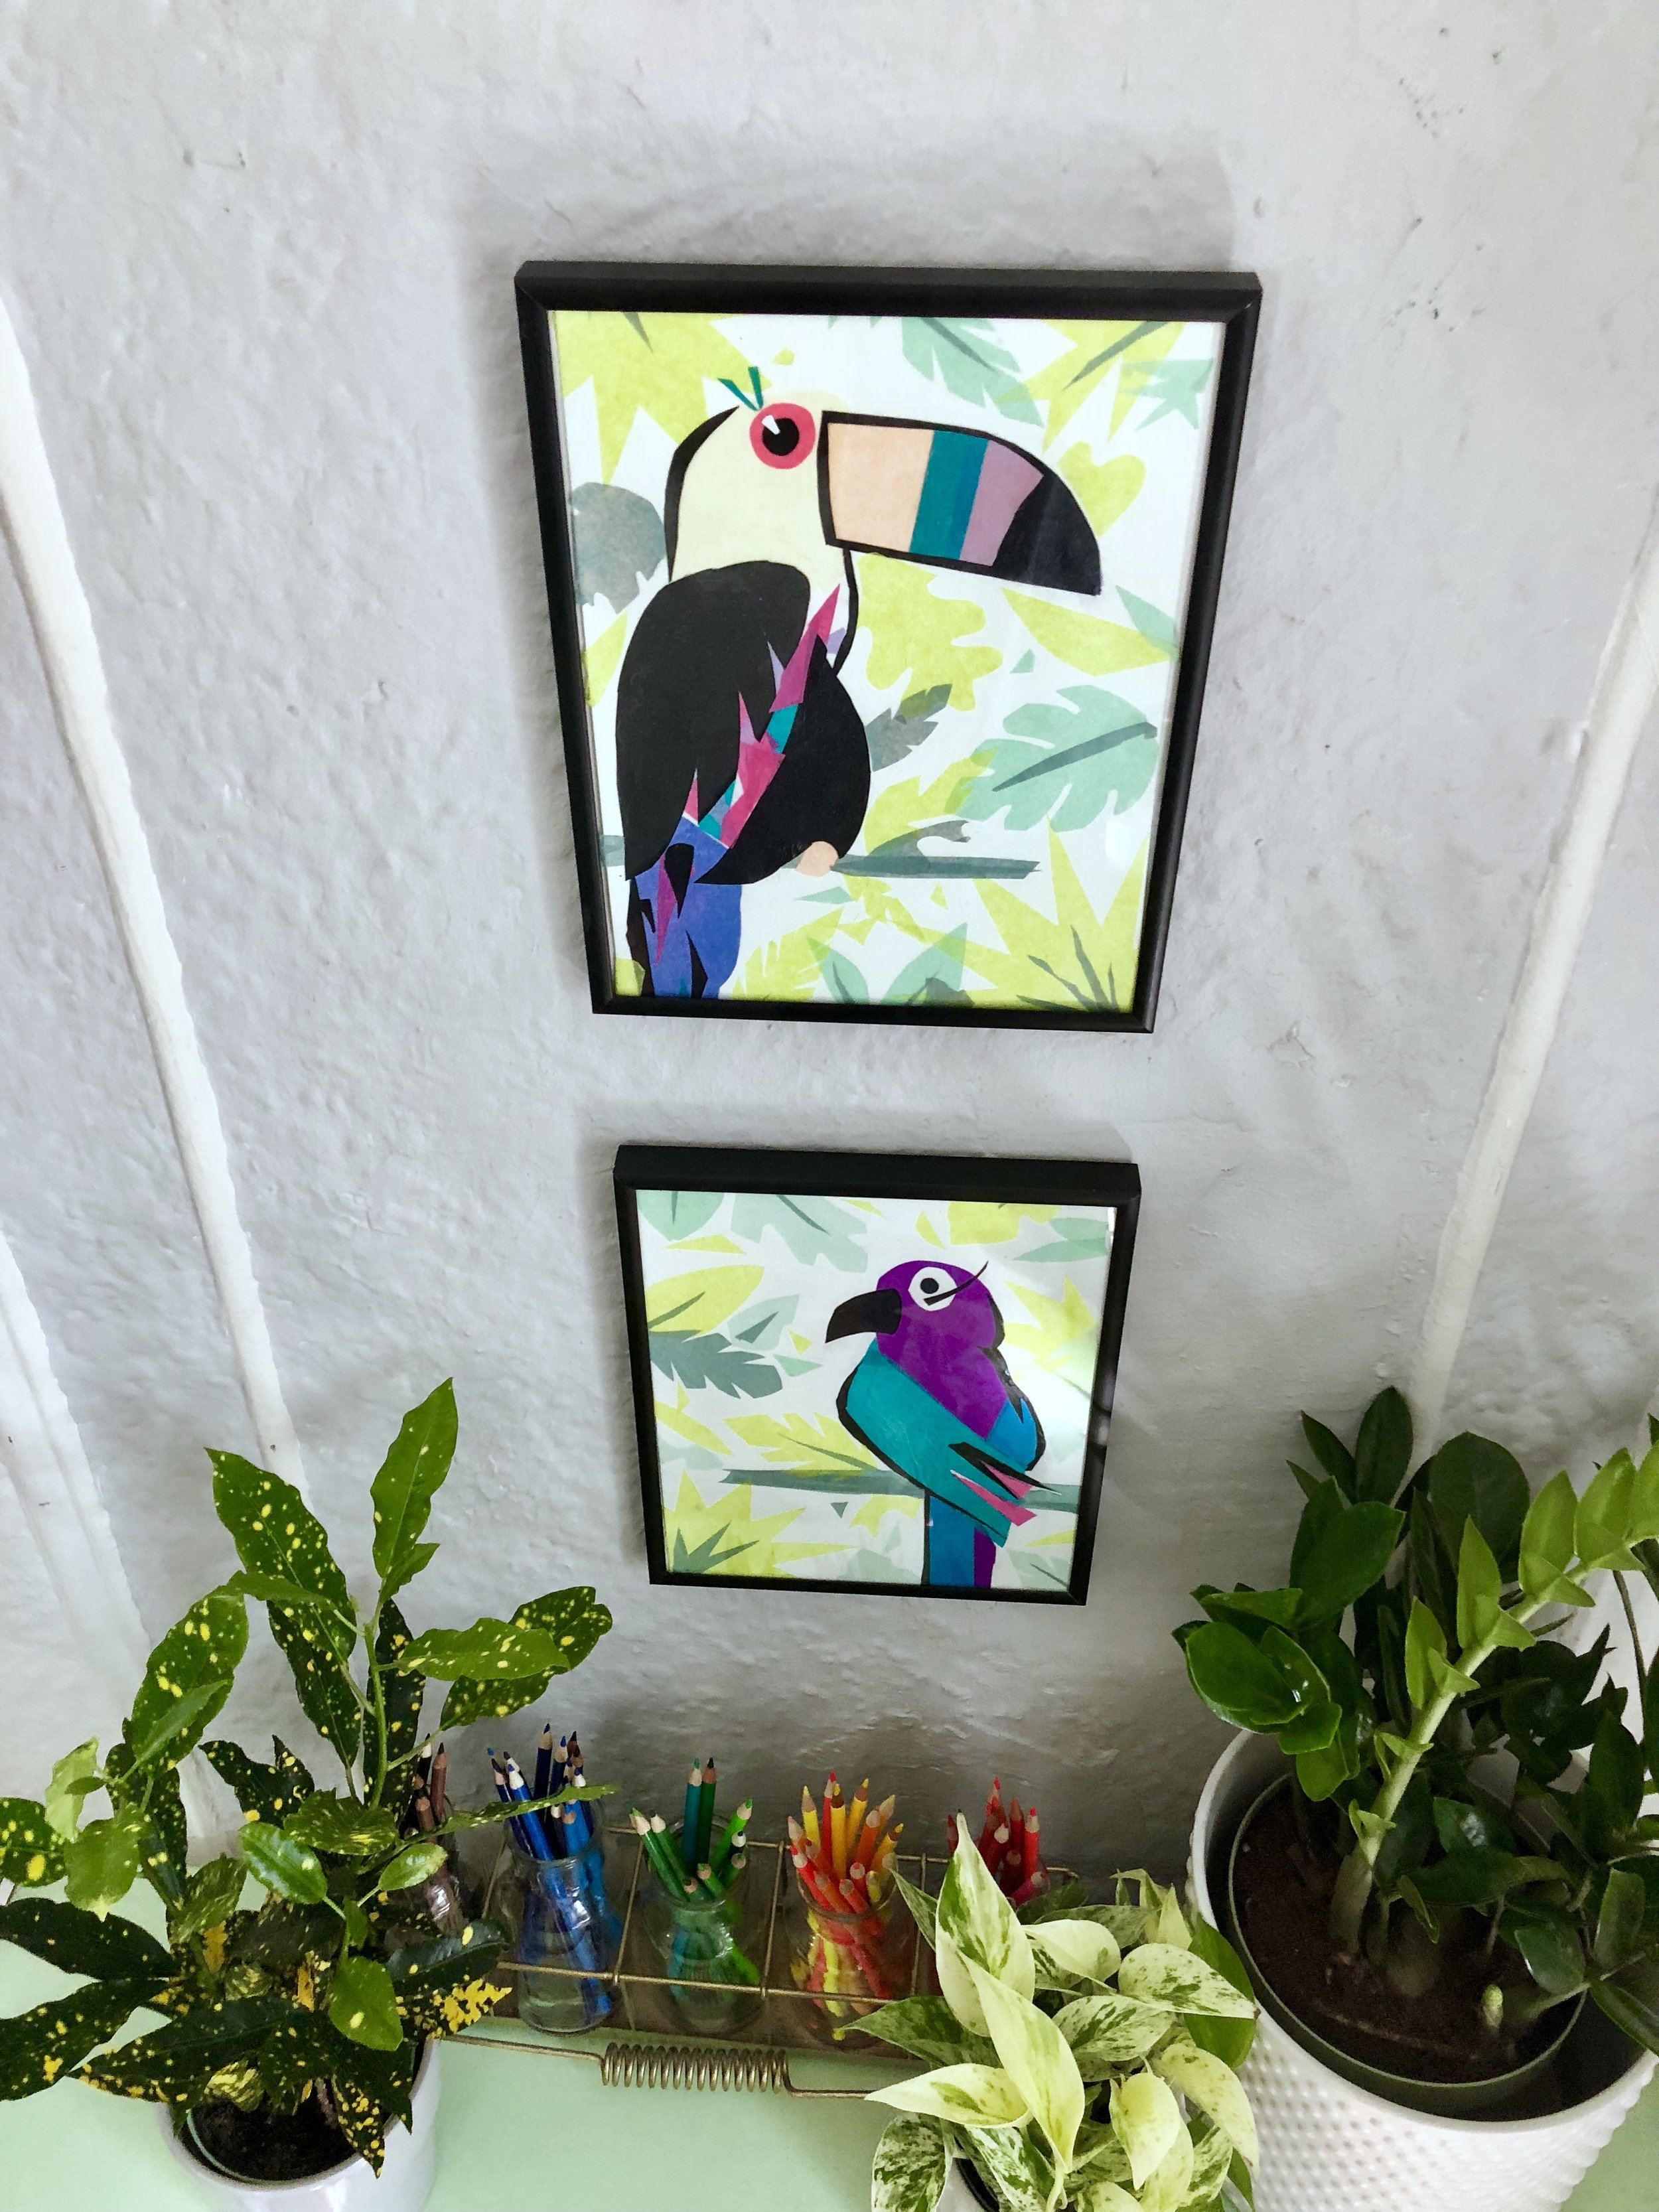 Tropical Bird Tissue Paper Art - Cut out shapes, layer and glue with Mod Podge and a paint brush. #tissuepaper #tissuepapercrafts #tissuepaperart #tropiocalbirds #walldecor #wallart #toucan #cheapwalldecor #modpodge